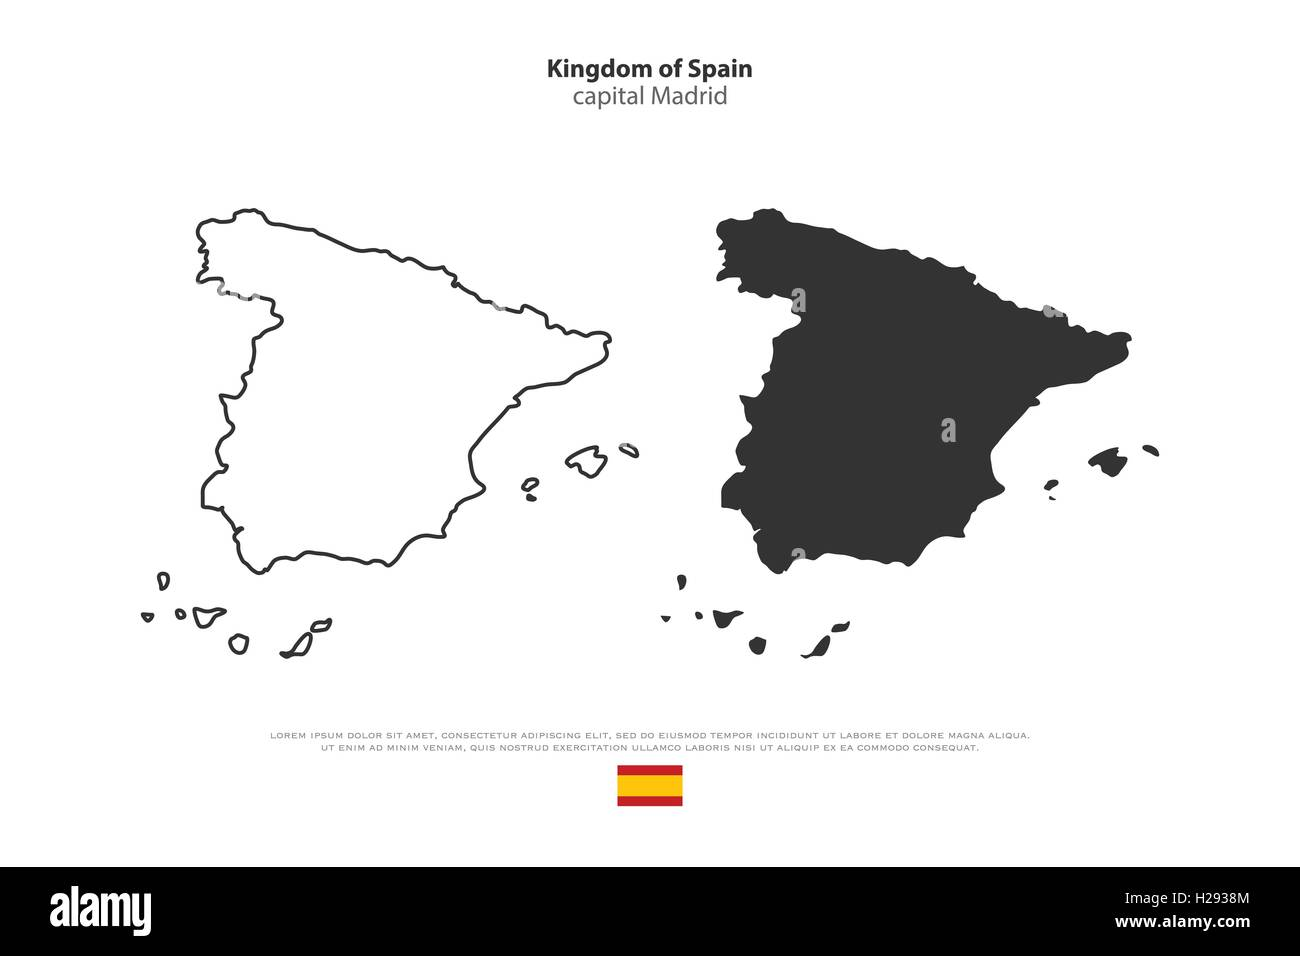 Kingdom of Spain isolated map and official flag icons. vector ... on india map icon, uk map icon, italy map icon, africa map icon, travel map icon, emea map icon, usa map icon, china map icon, russia map icon, mexico map icon, canada map icon, gps map icon, singapore map icon, brazil map icon, japan map icon, hk map icon, pa map icon, asia map icon, regional map icon, europe map icon,